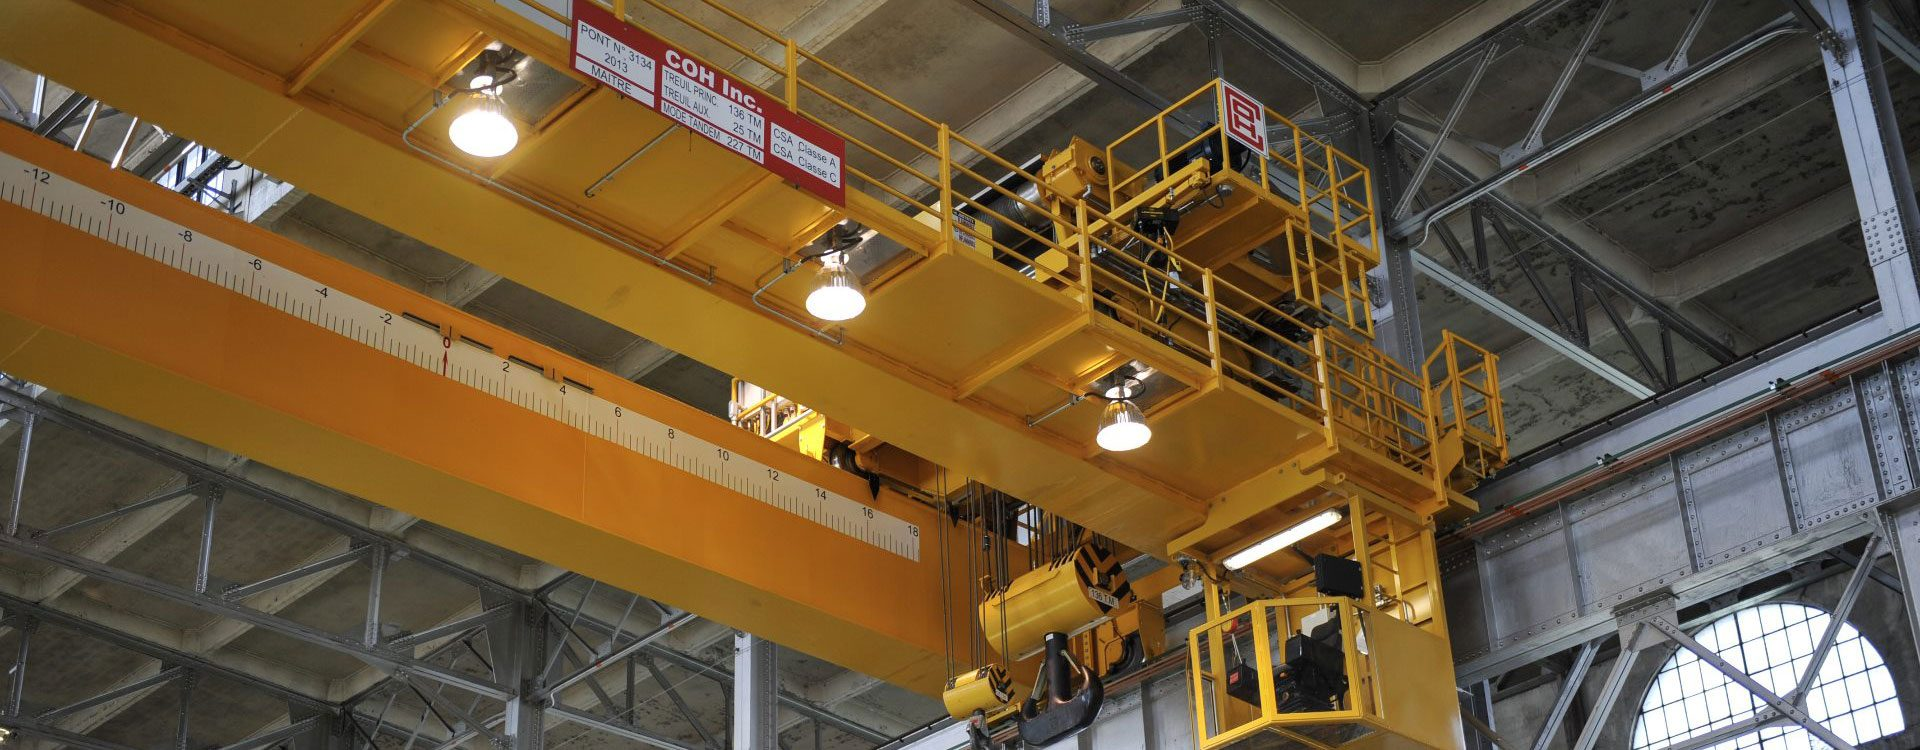 REEL COH : material handling equipment, lifting devices, overhead cranes